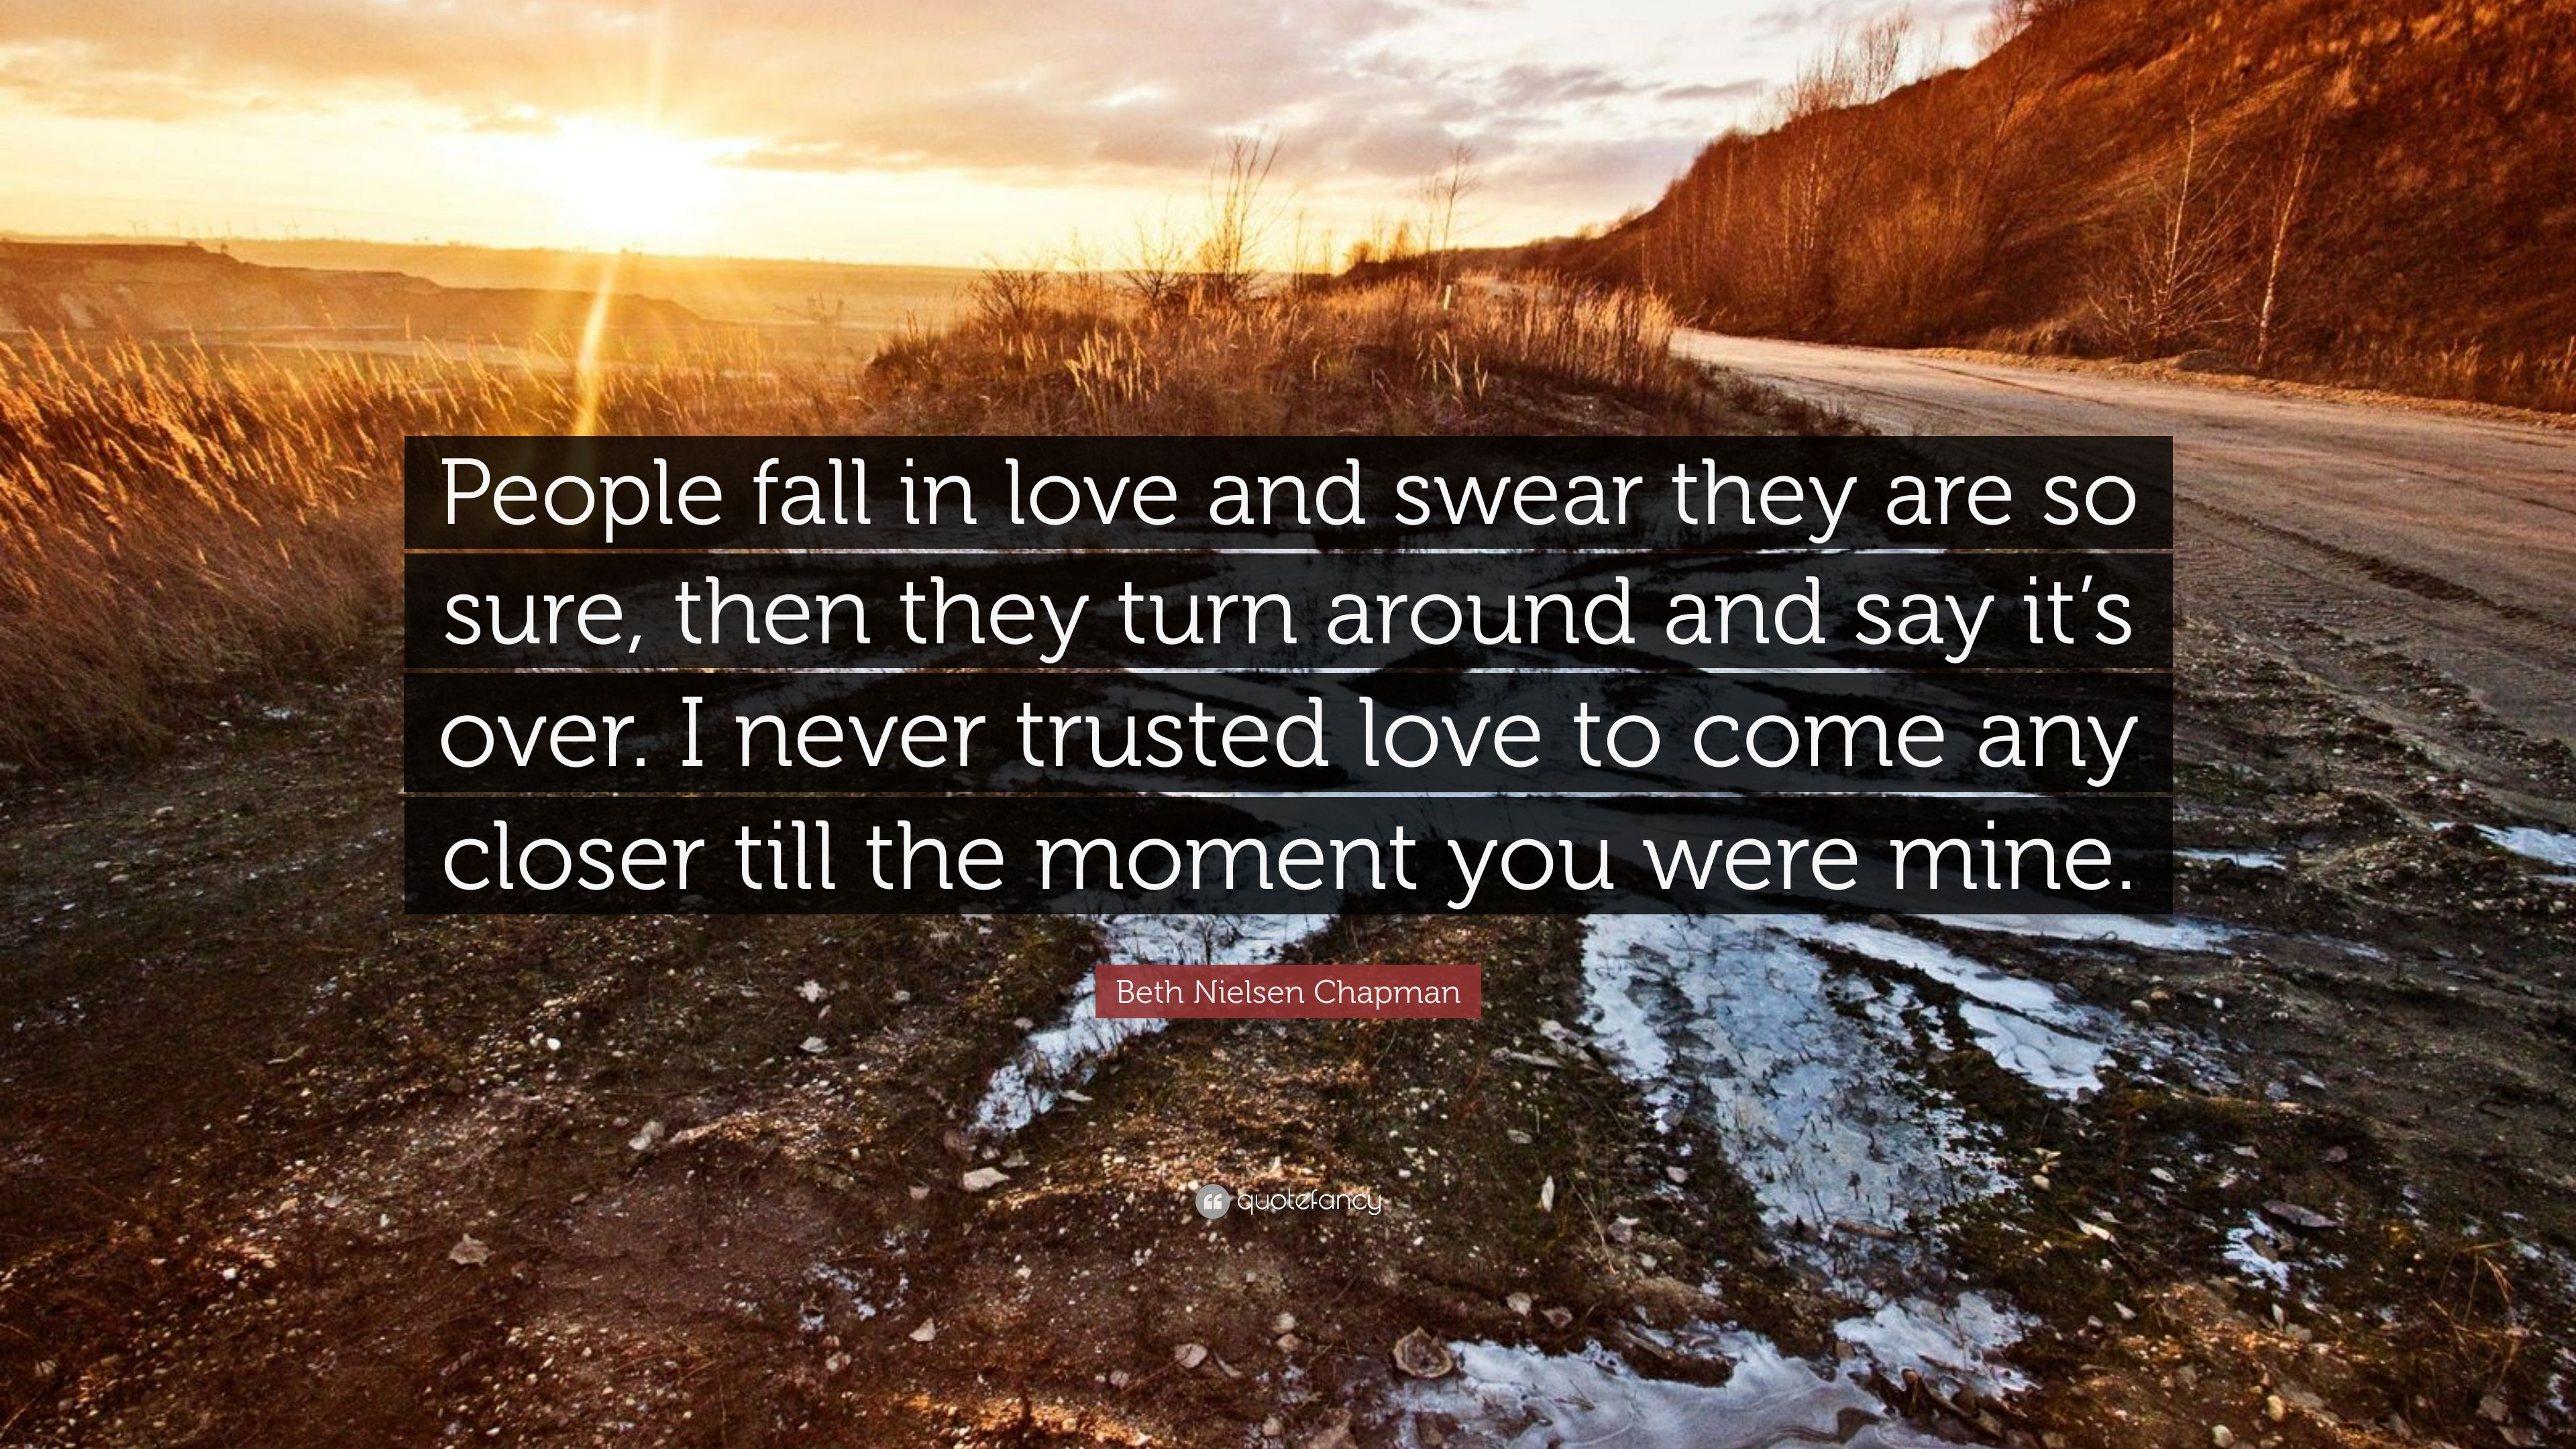 "Beth Nielsen Chapman Quote ""People fall in love and swear they are so sure"